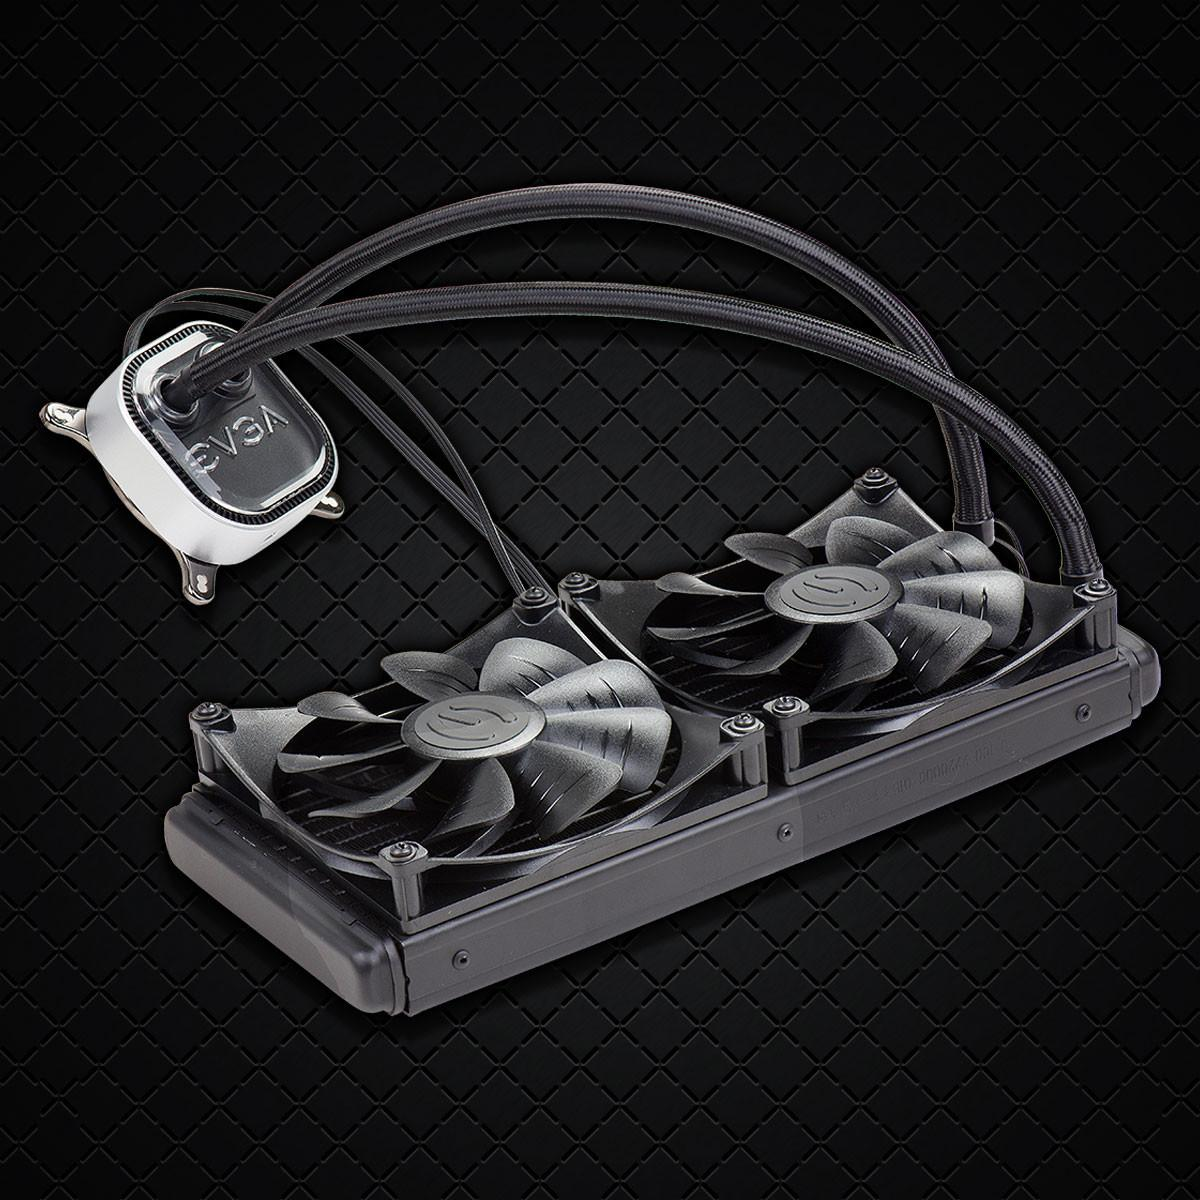 EVGA Adds CLC 120/280 Liquid Coolers